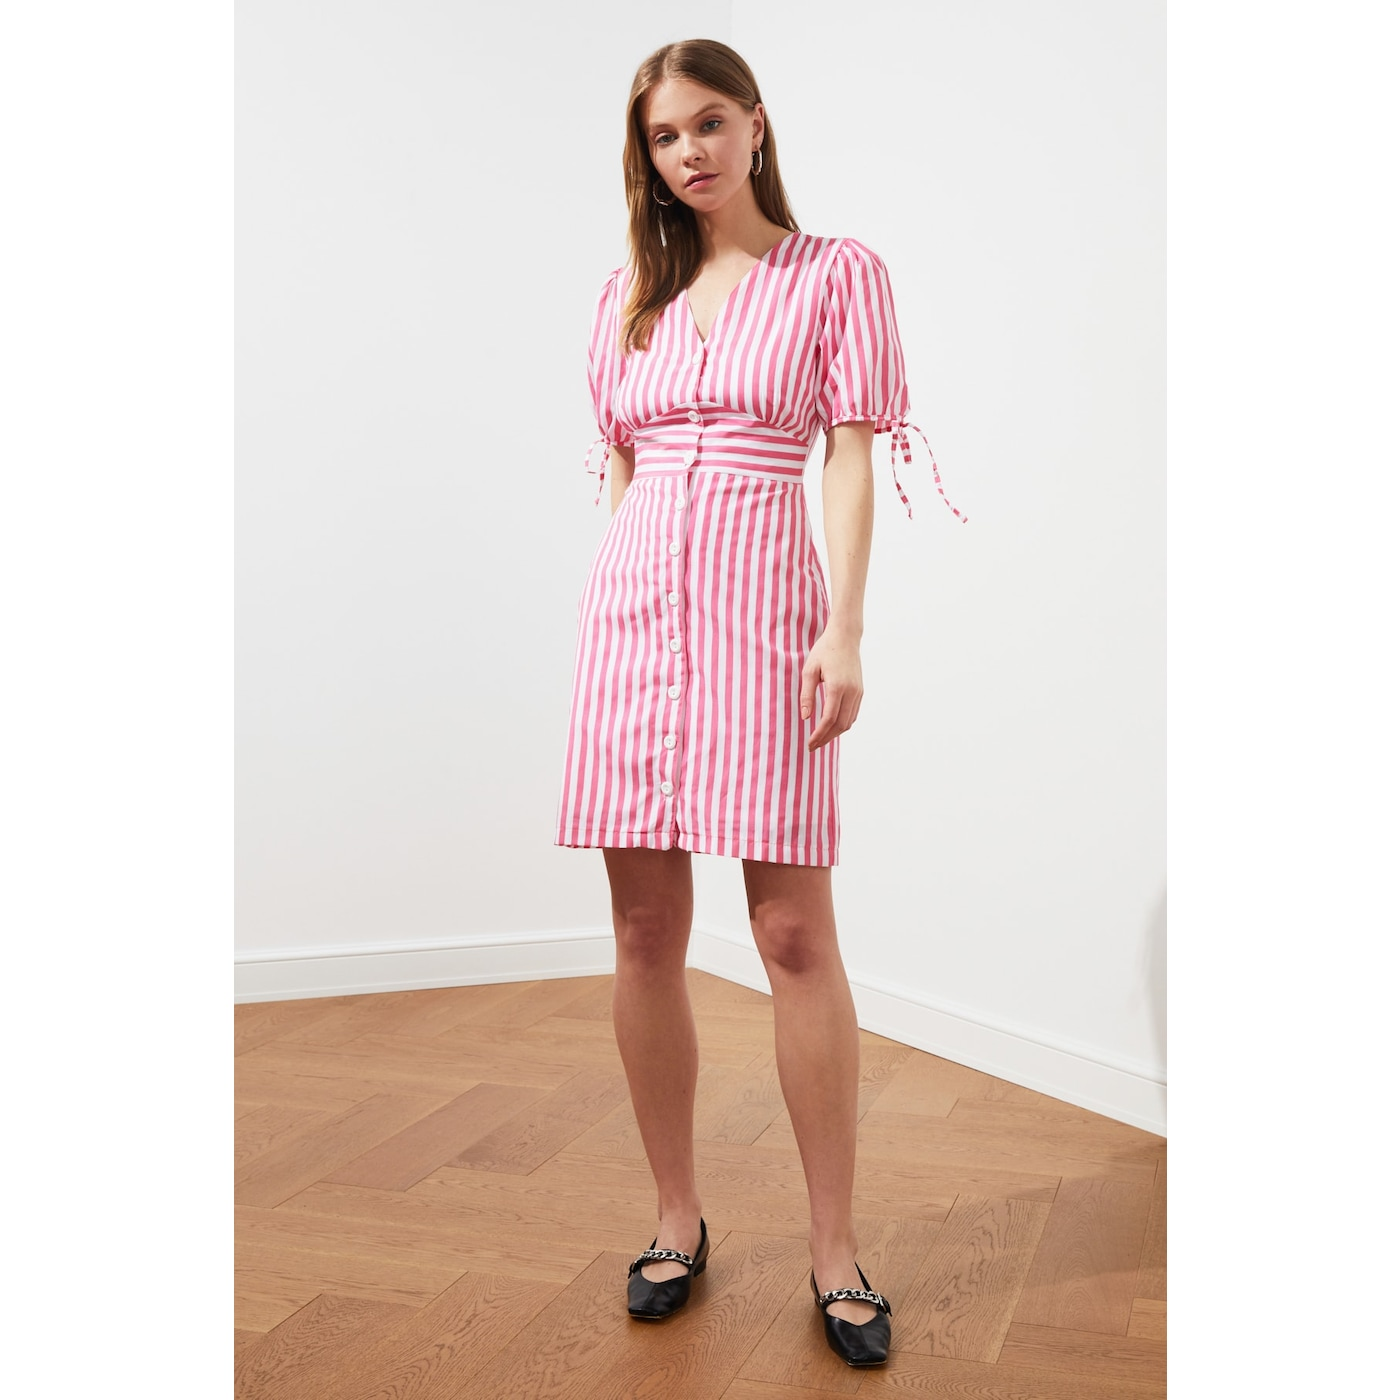 Trendyol Pink Striped Shirt Dress dámské 40